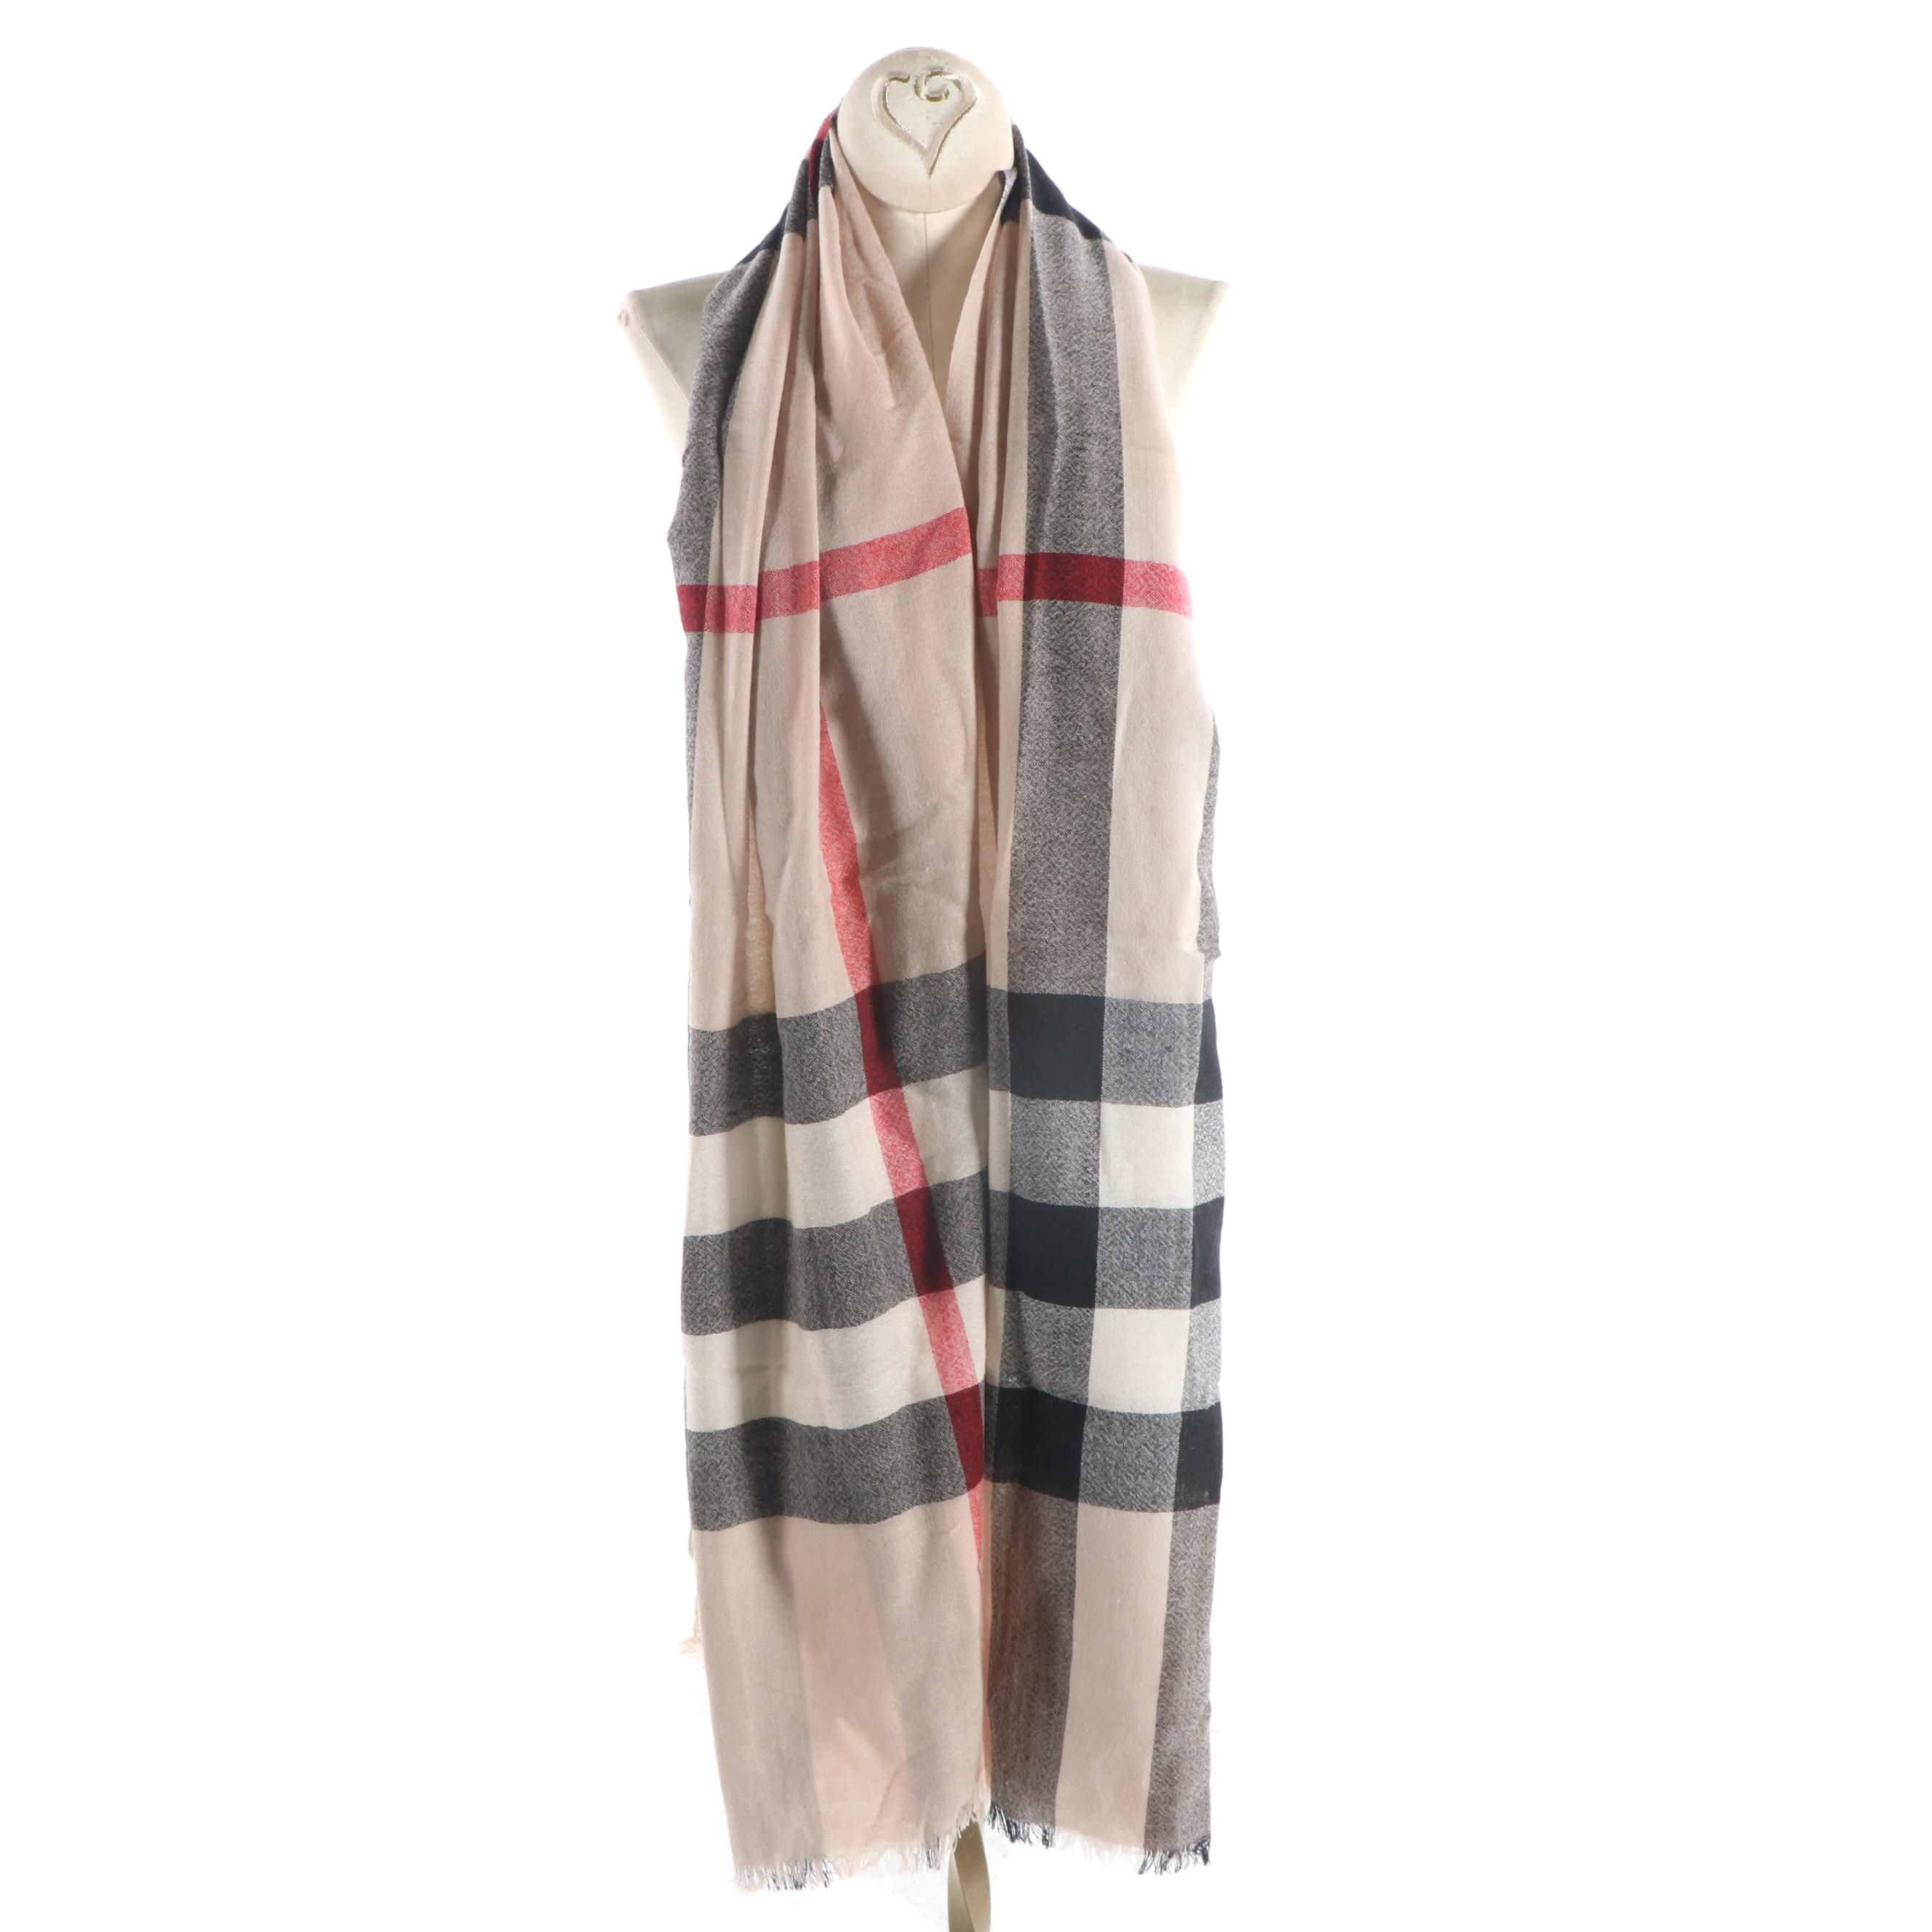 Burberry Check Cashmere and Wool Blend Scarf